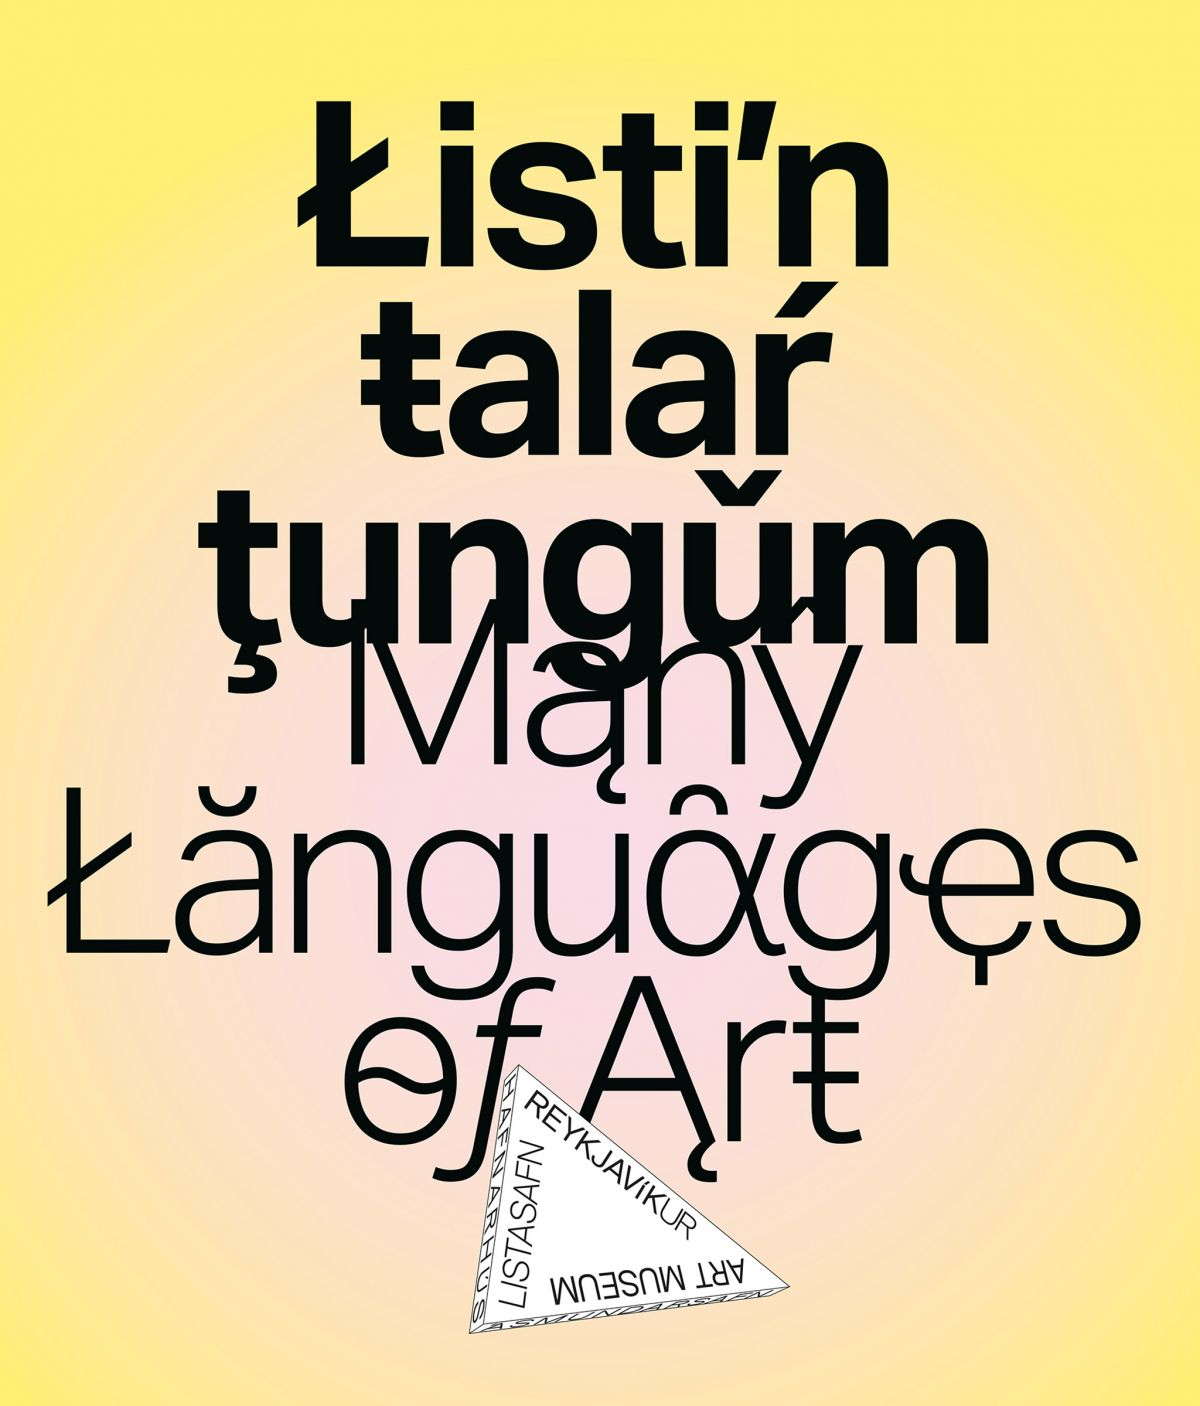 Listin talar tungum / Many Languages of Art